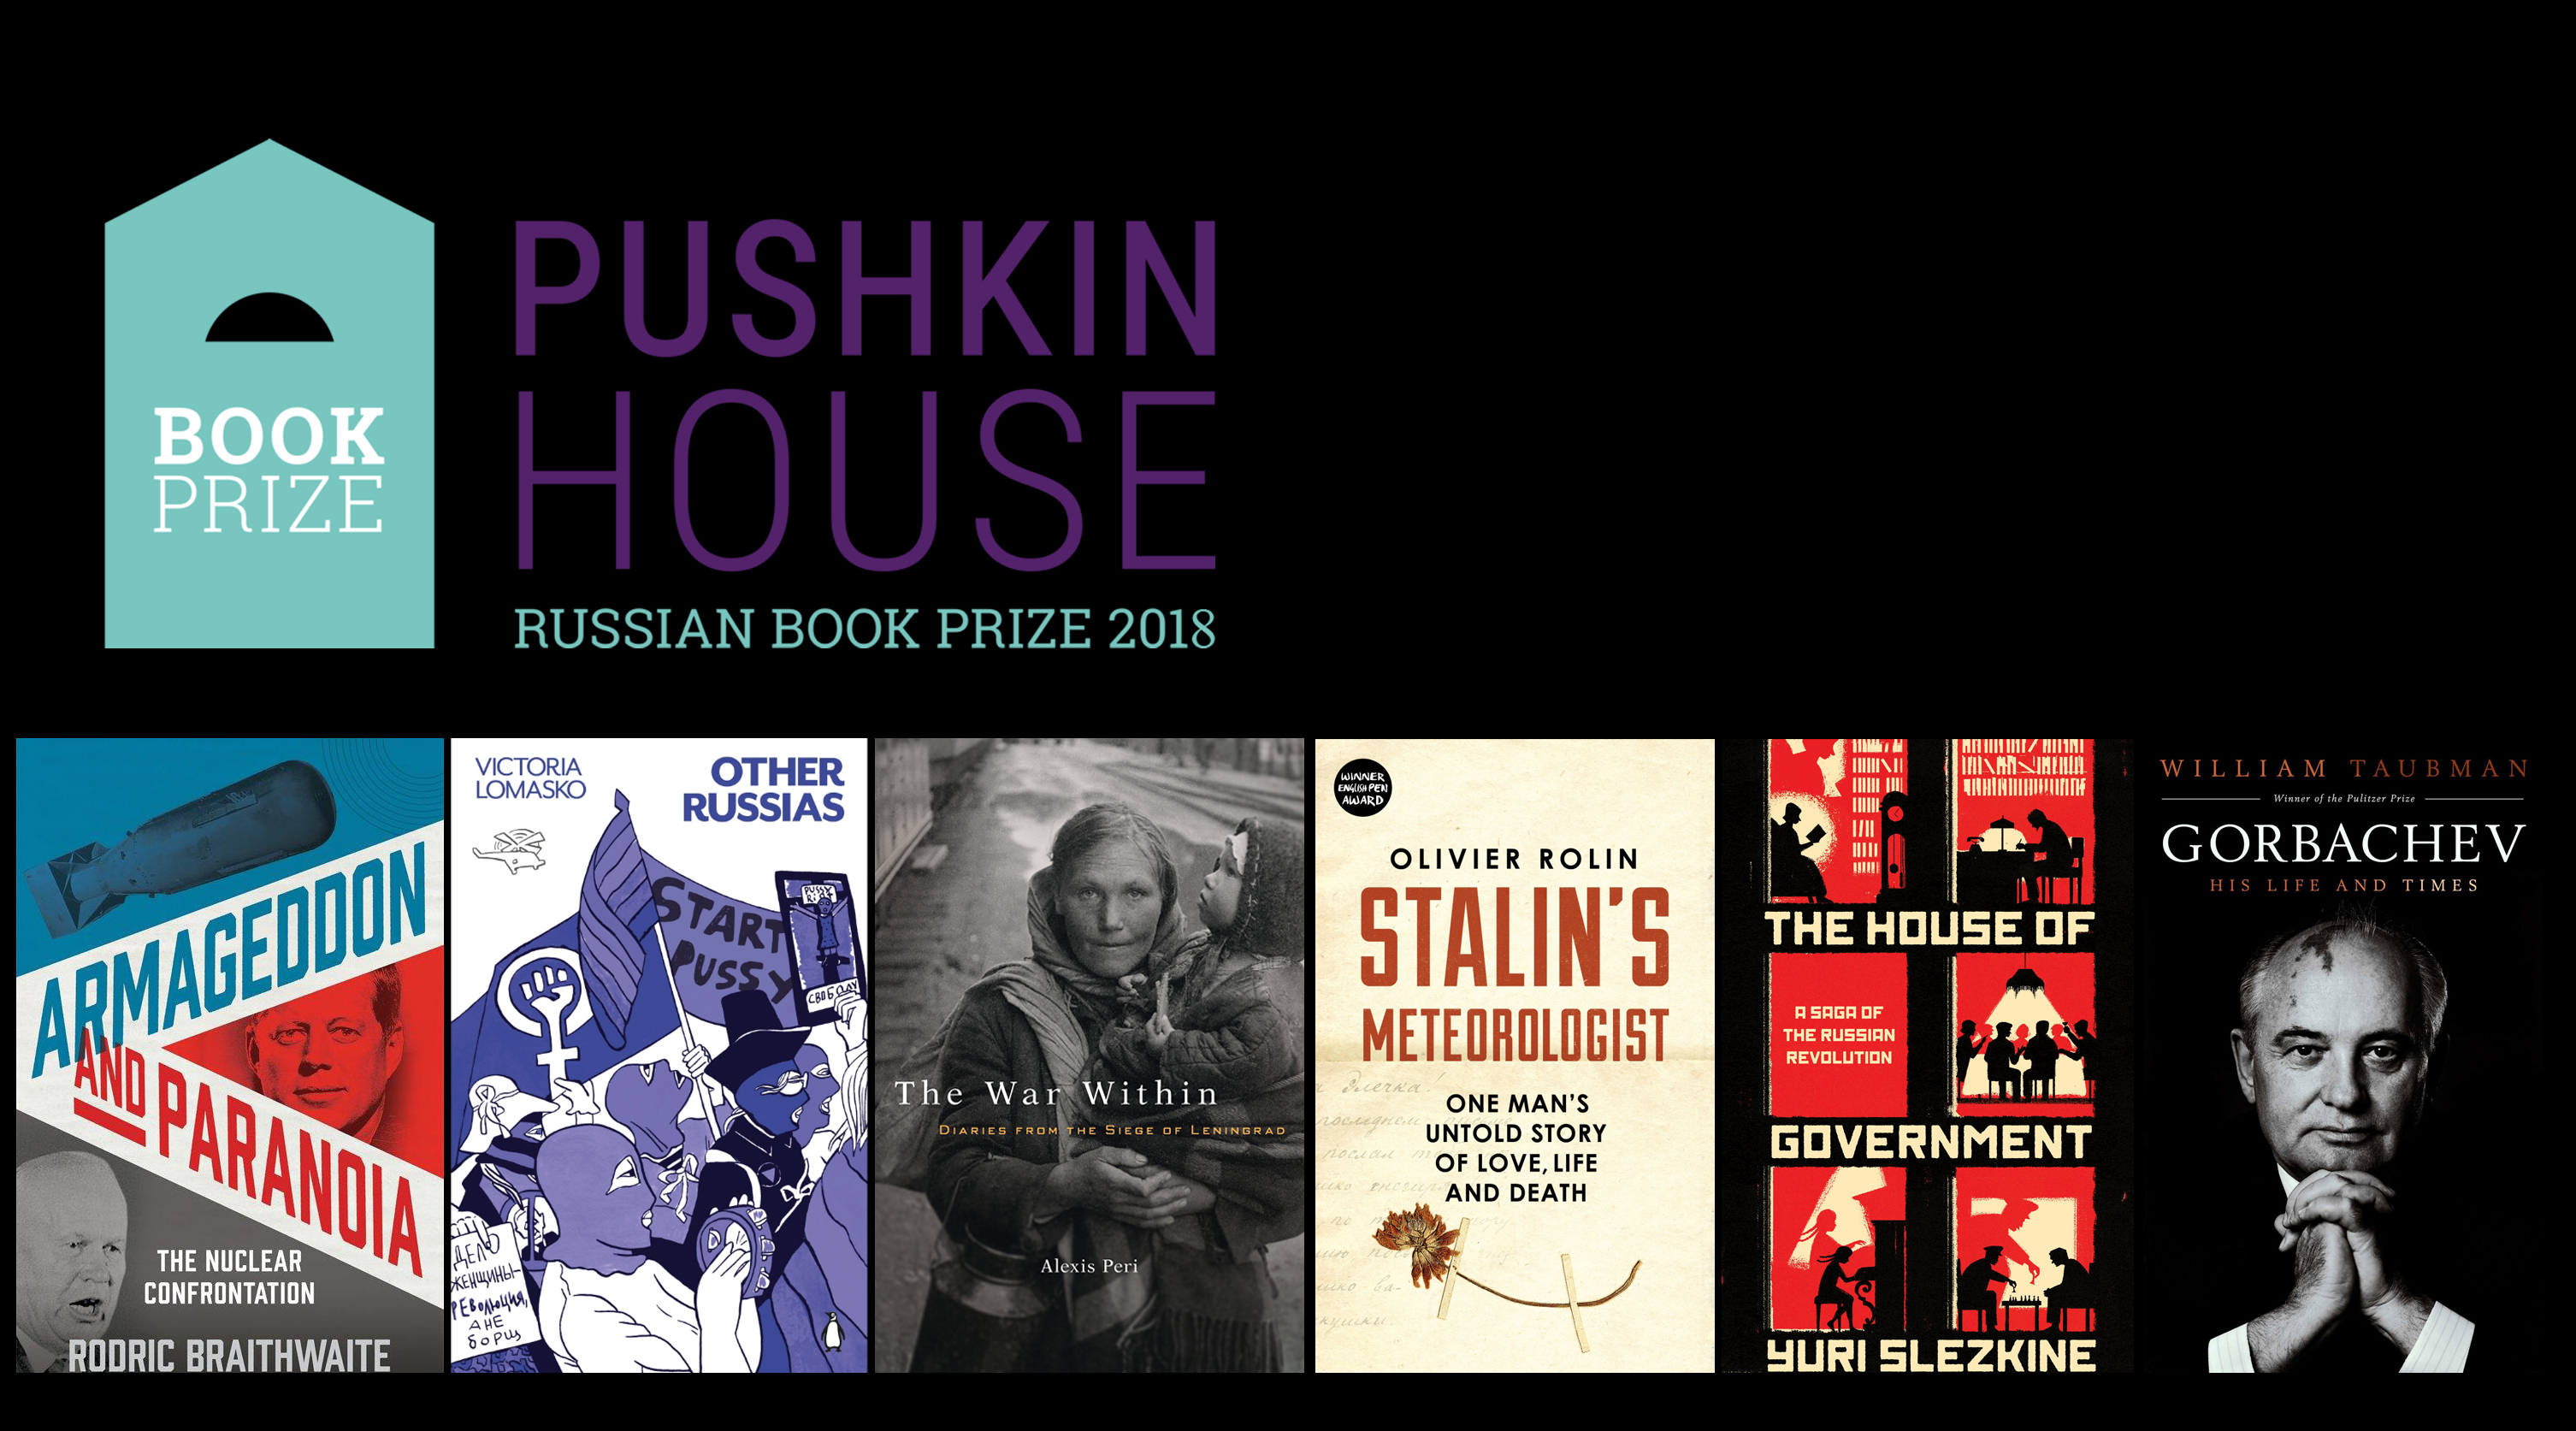 Pushkin House Book Prize 2018